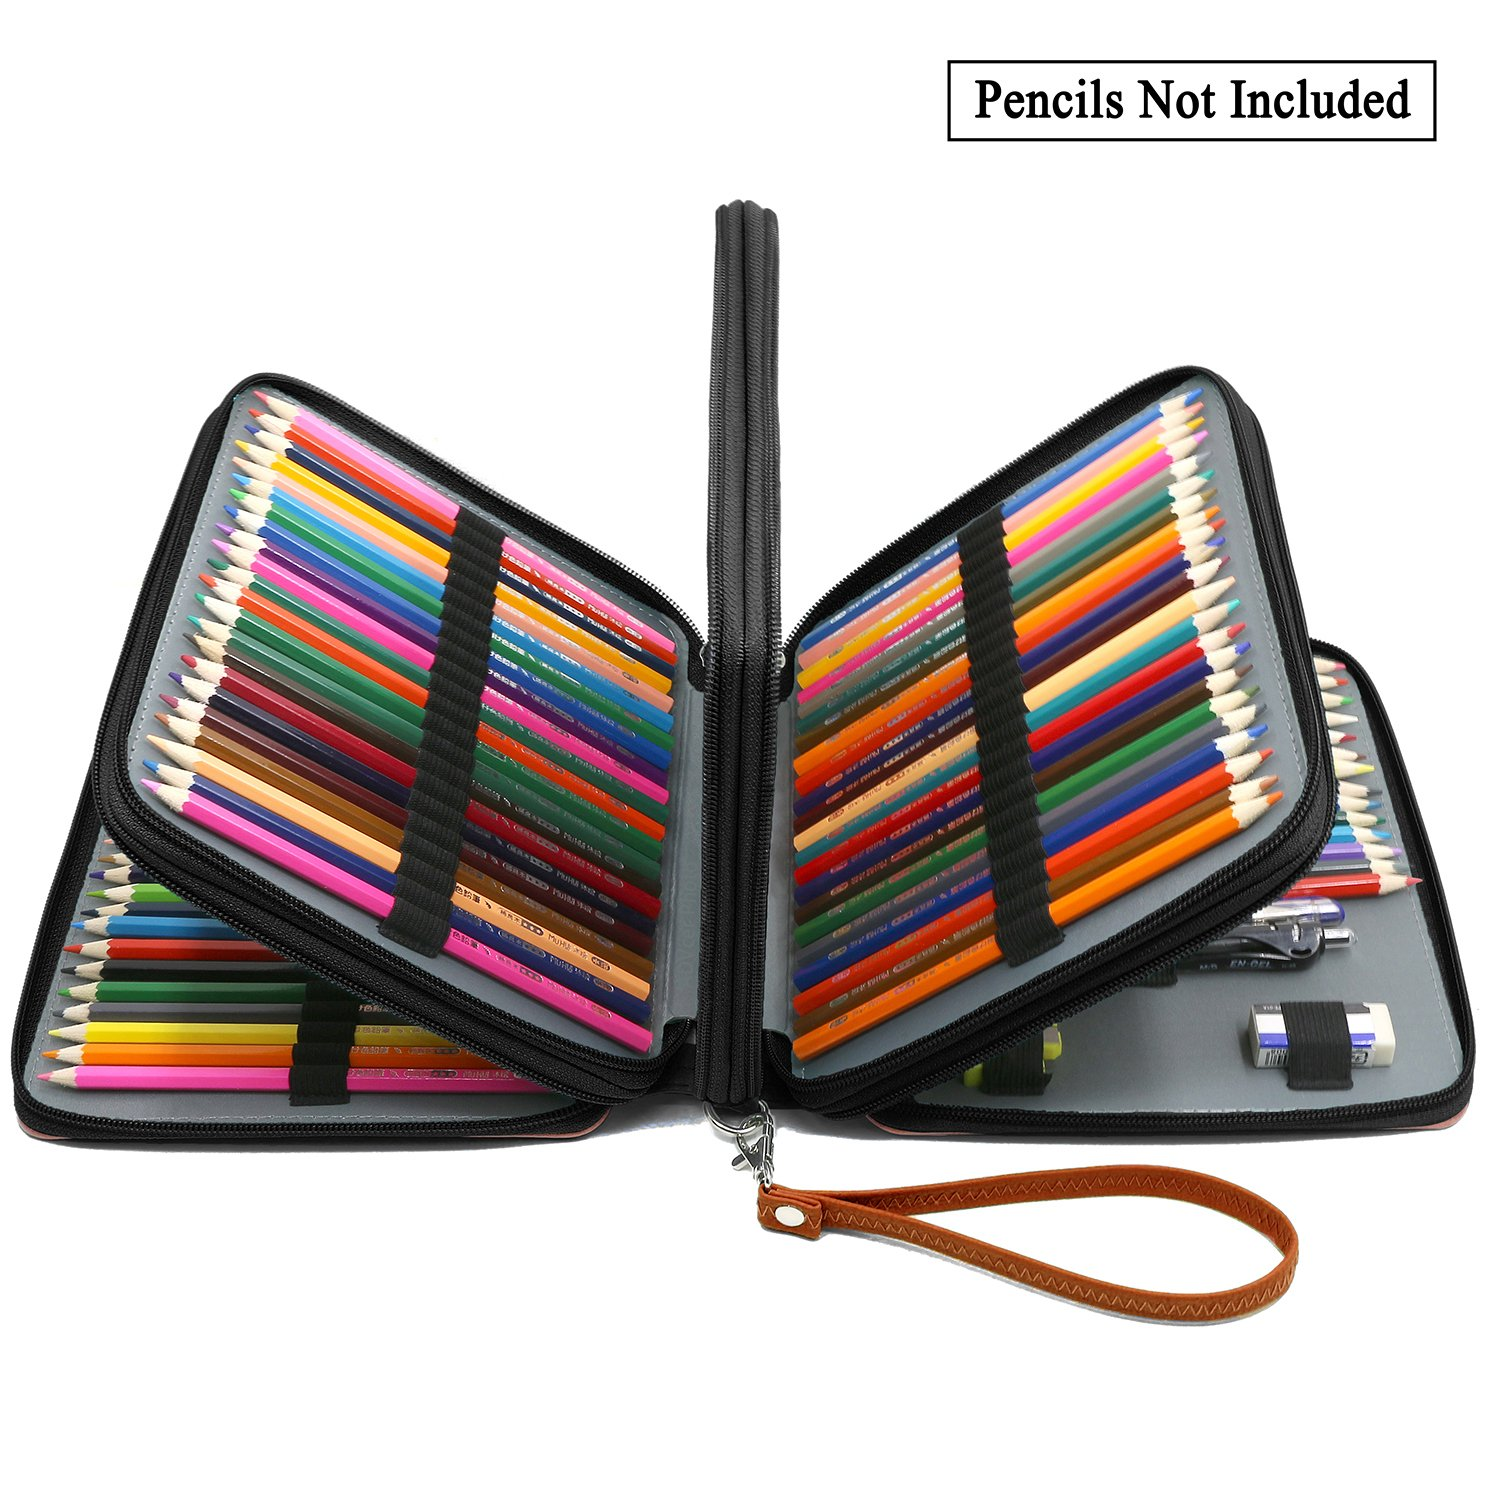 ADVcer 160 Slots Pencil Case - PU Leather Large Capacity Zipper Pen Bag with Hand Strap for Prismacolor Crayola Colored Pencil, Watercolor Pencils, Marco Pens, Gel Pen, Makeup Brush, Sharpener (Brown)